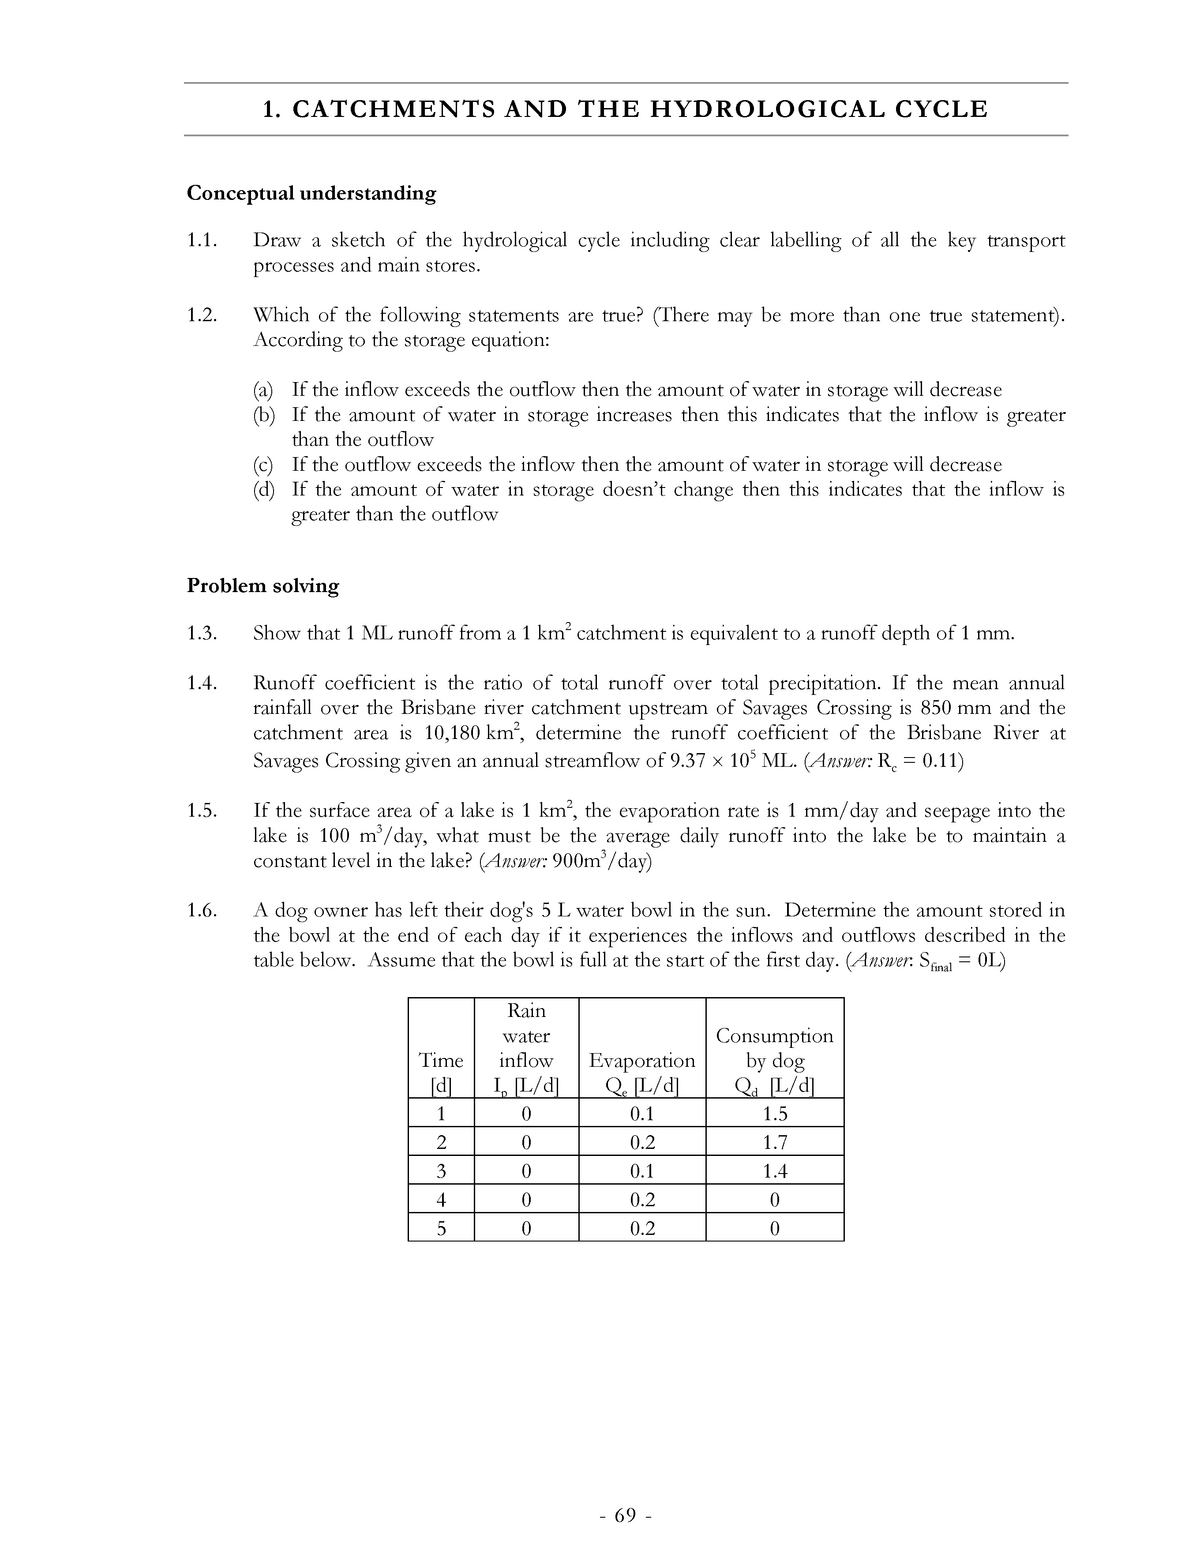 Tutorial work - homework 1-10 with solutions, examples 1-10